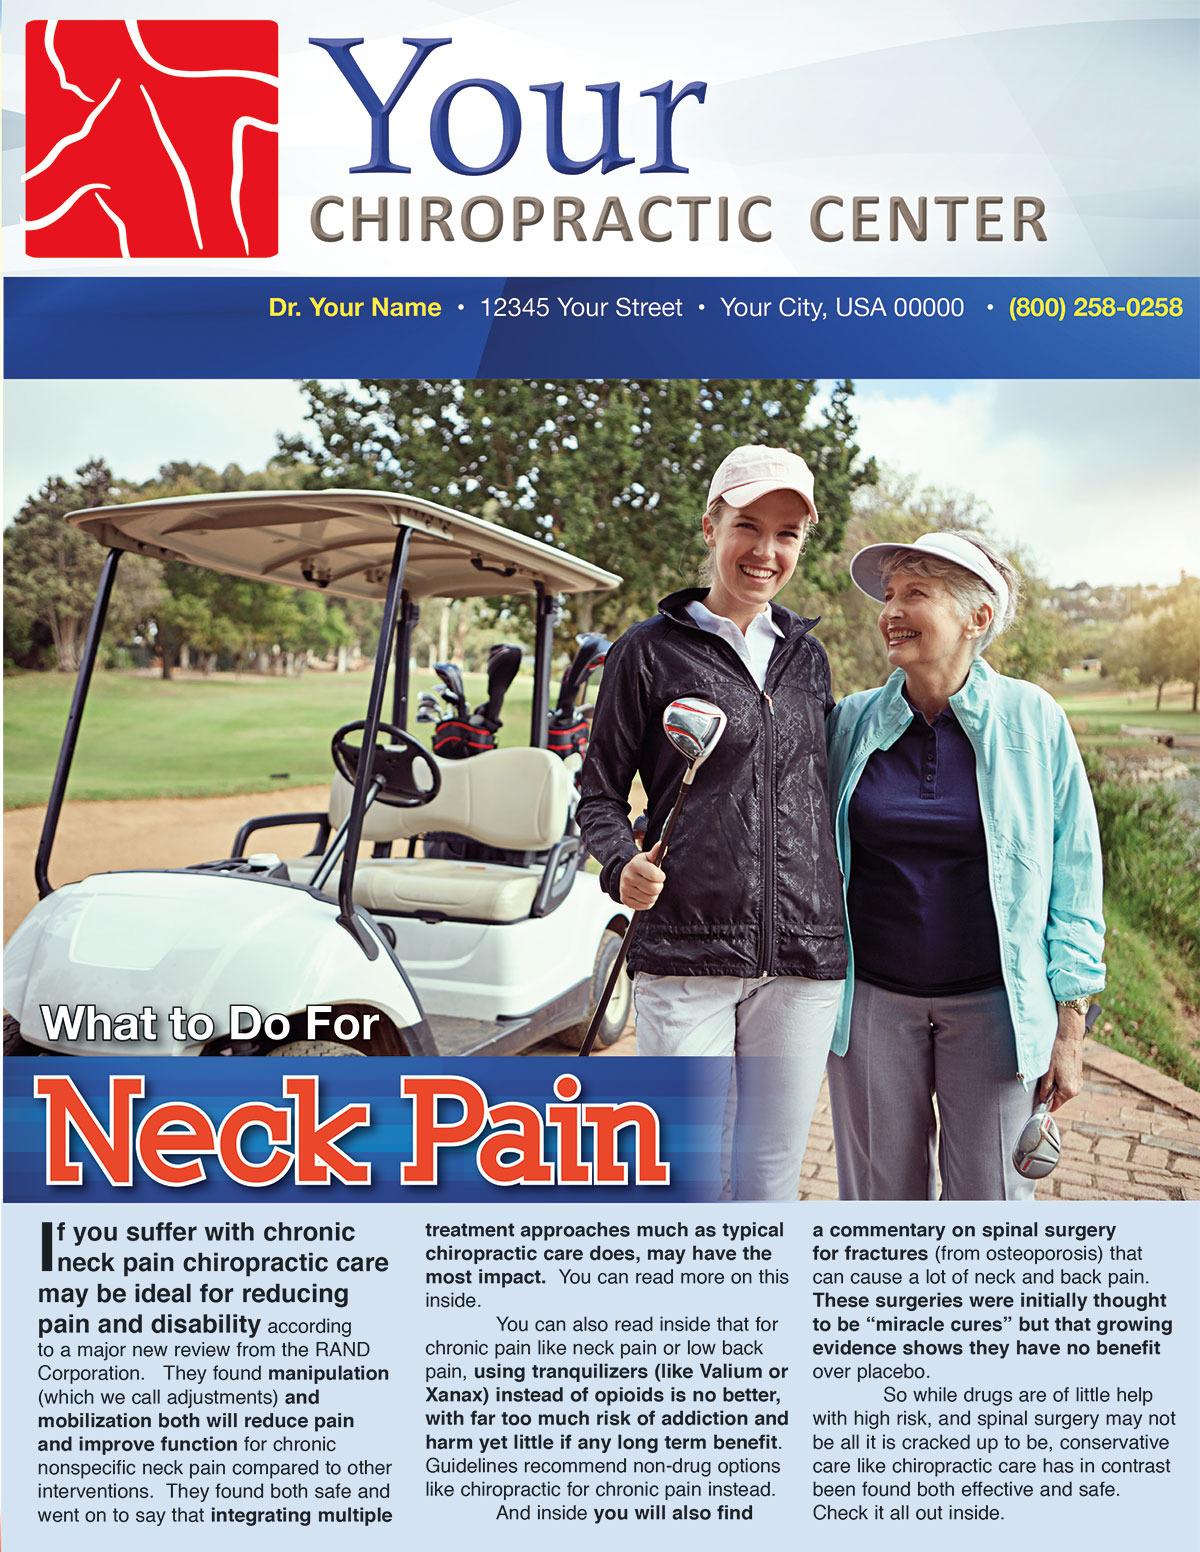 What to Do for Neck Pain